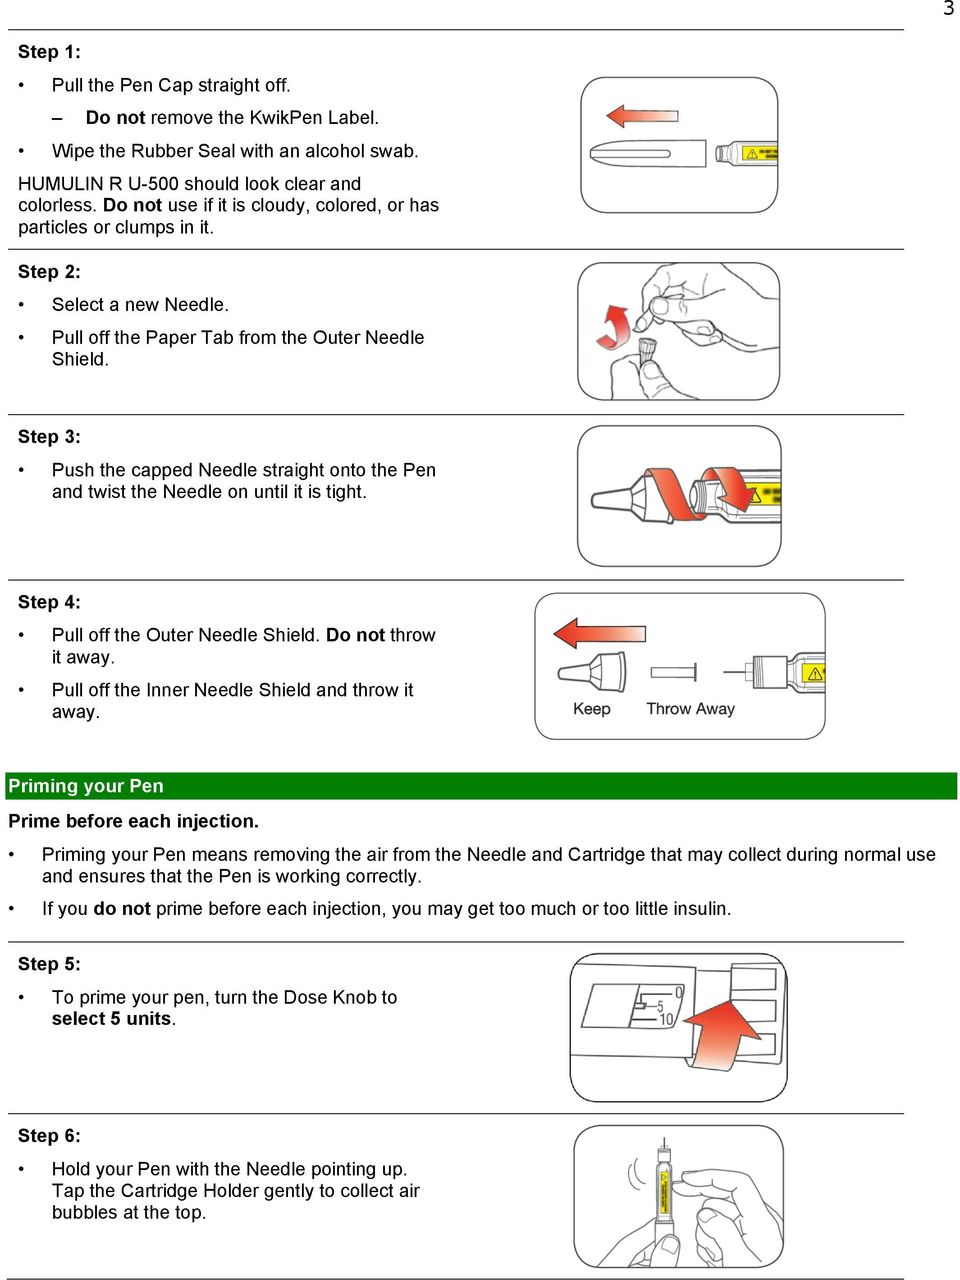 Instructions for Use - PDF